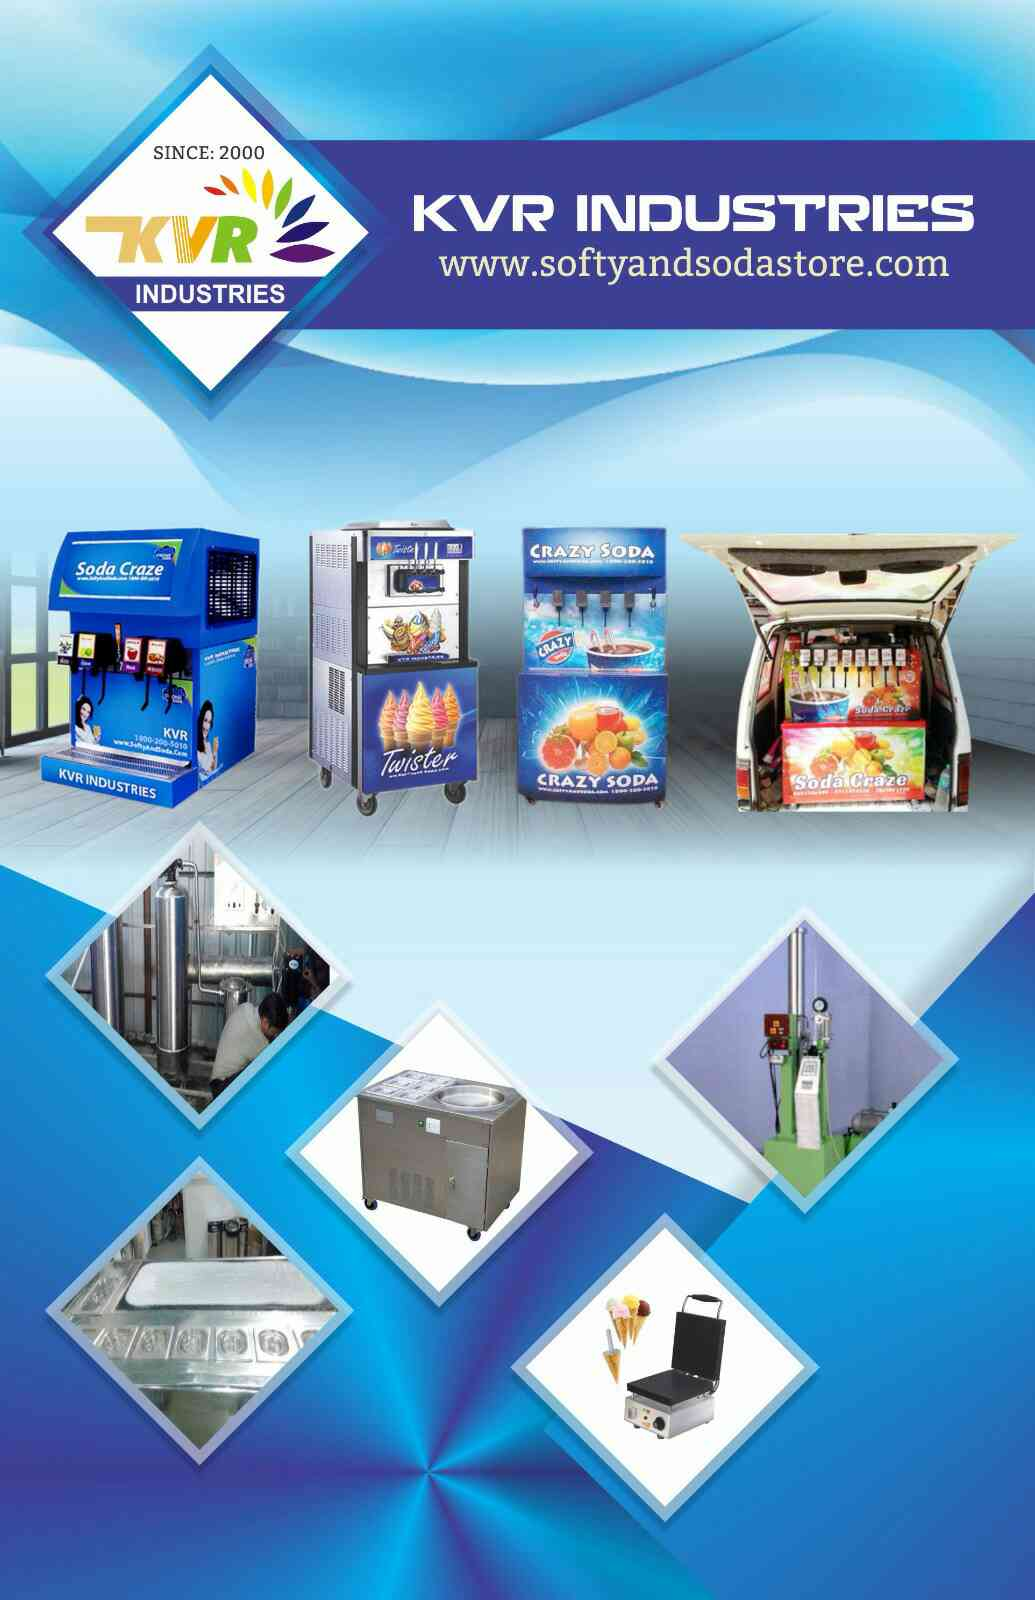 We are the leading manufacturers of Softy ice cream making machines